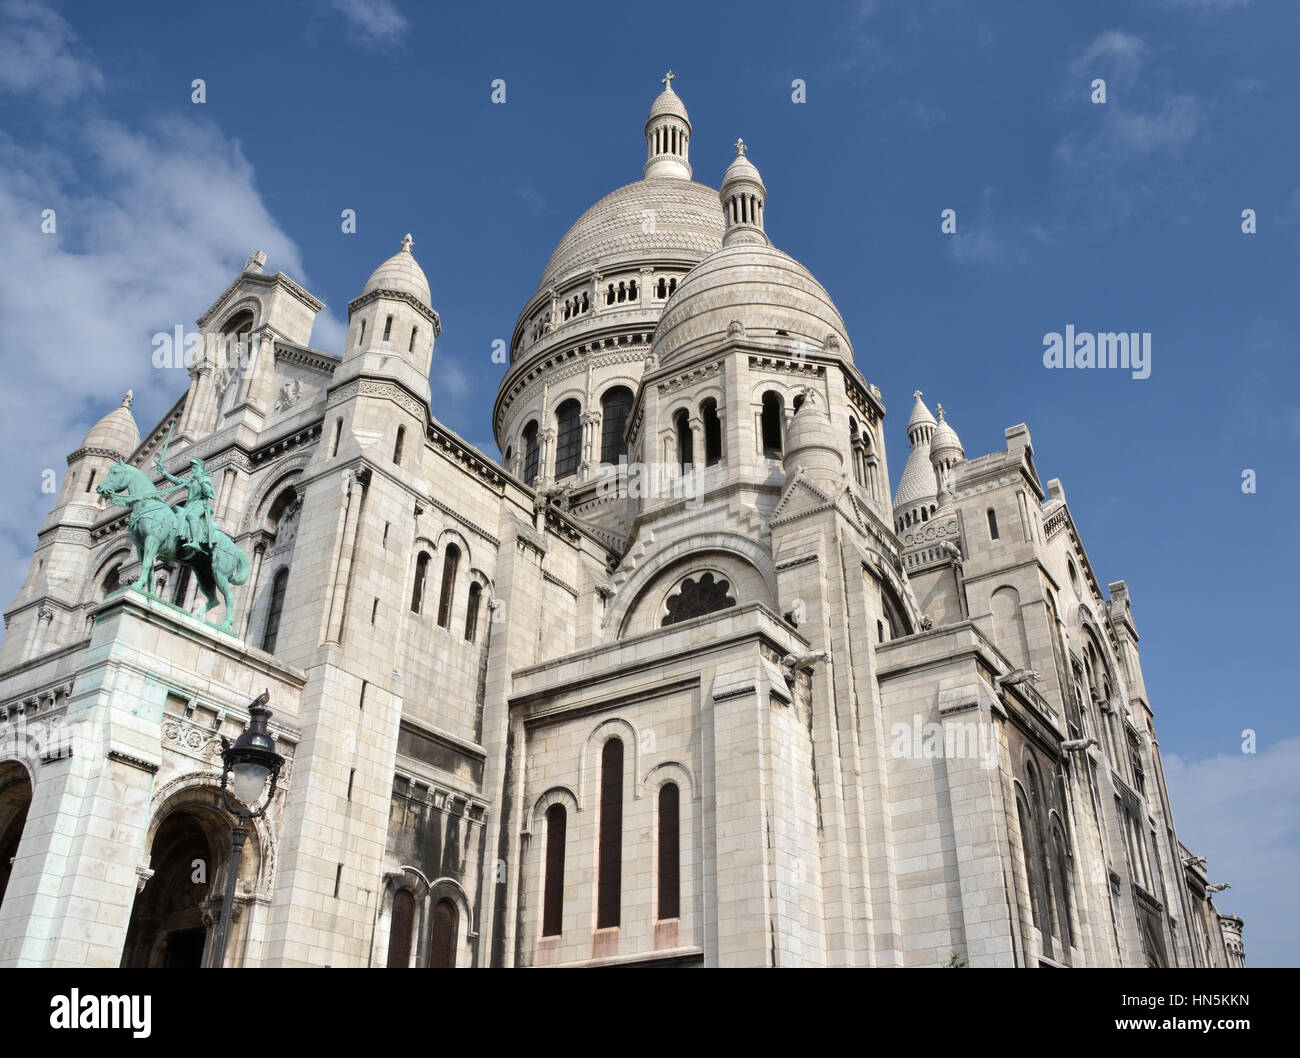 The Catholic church of Sacre Coeur at the top of  Montmartre Paris France. - Stock Image